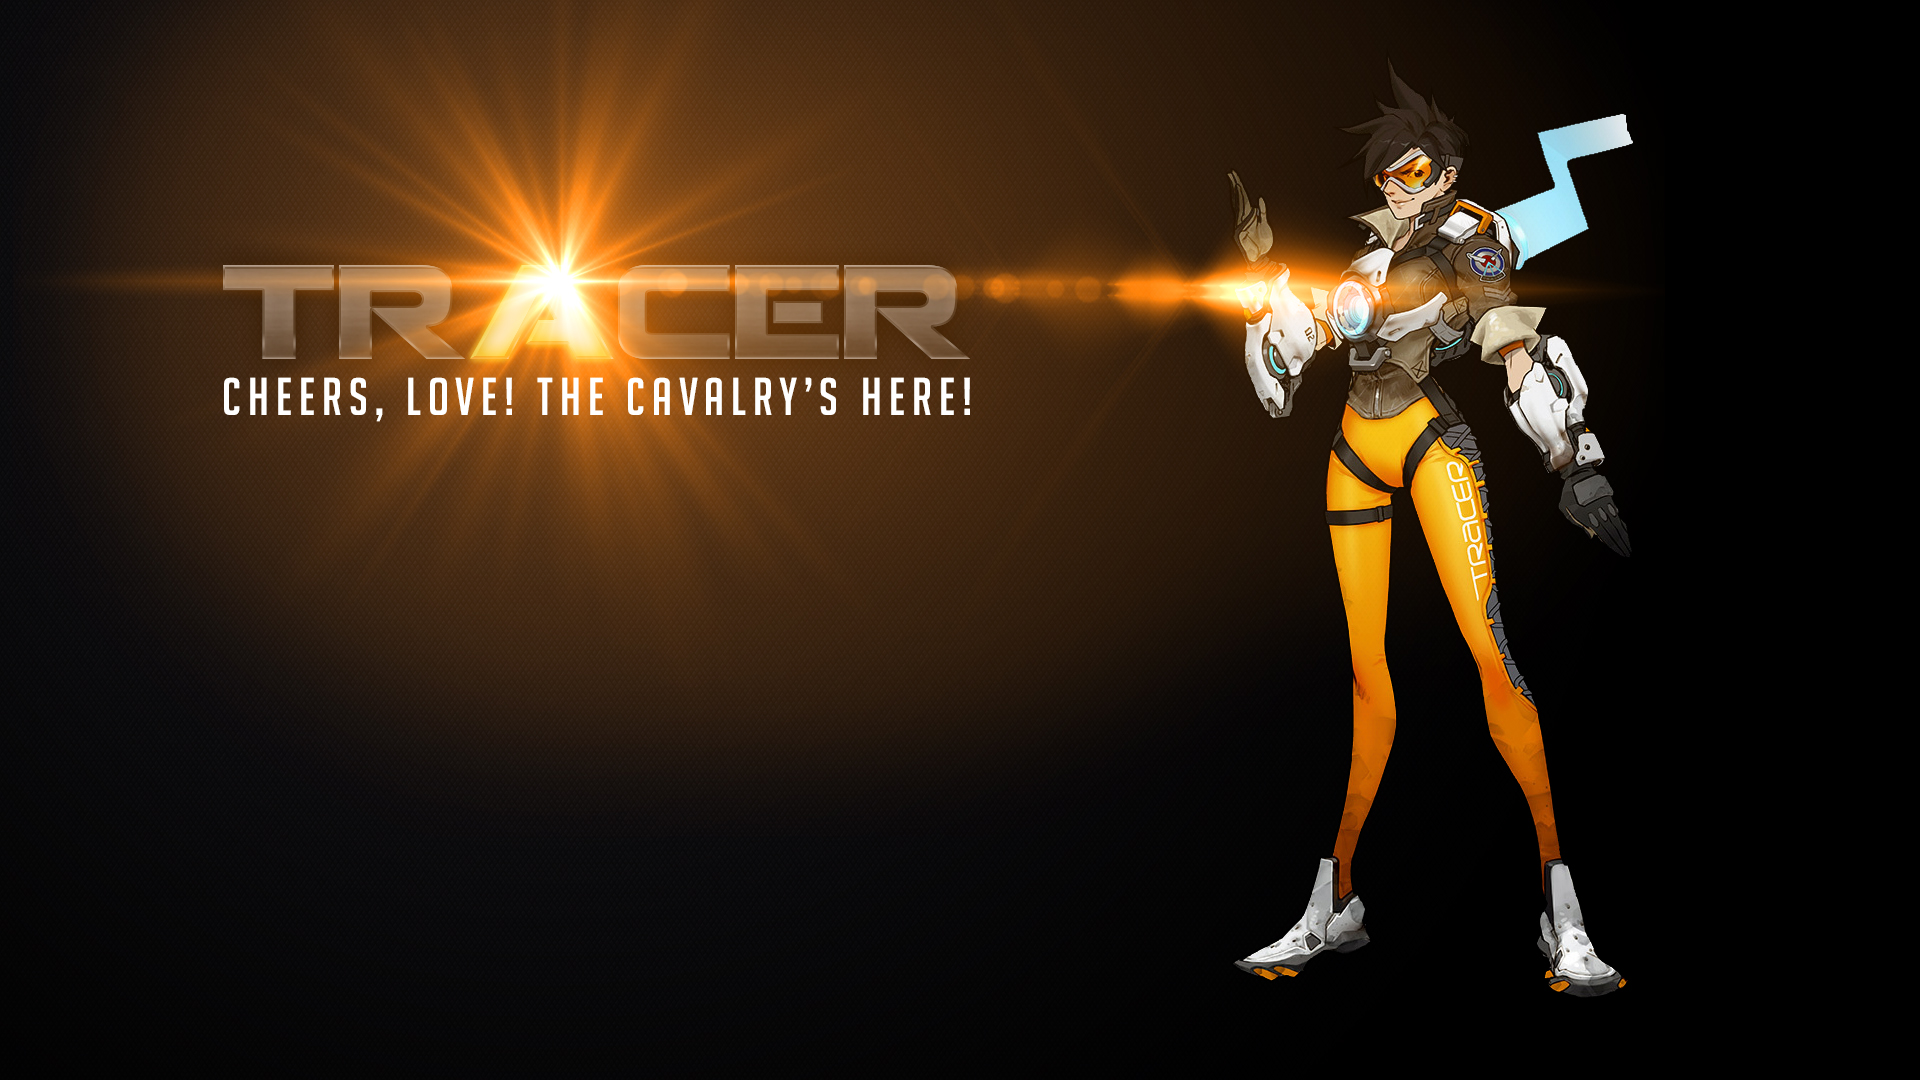 Overwatch Backgrounds, Pictures, Images